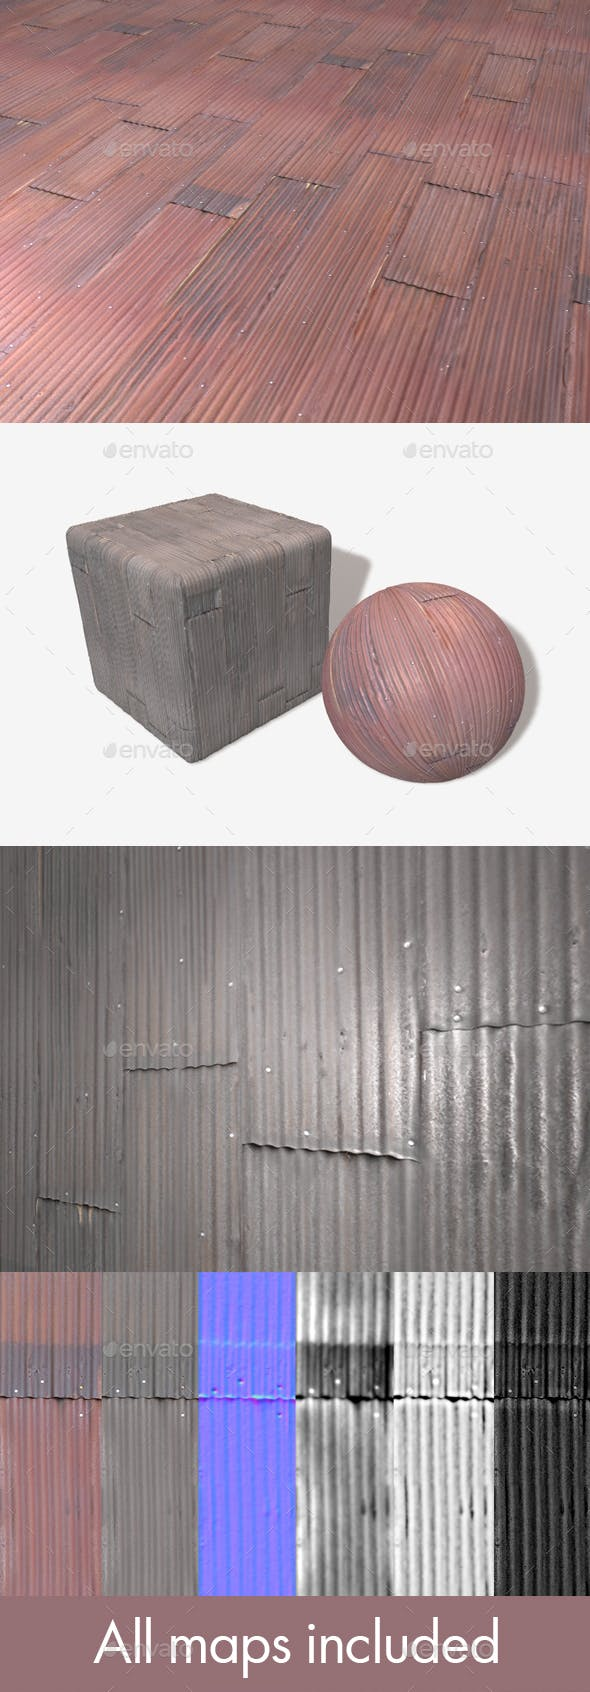 2 Rusty Corrugated Metal Panels Seamless Texture - 3DOcean Item for Sale